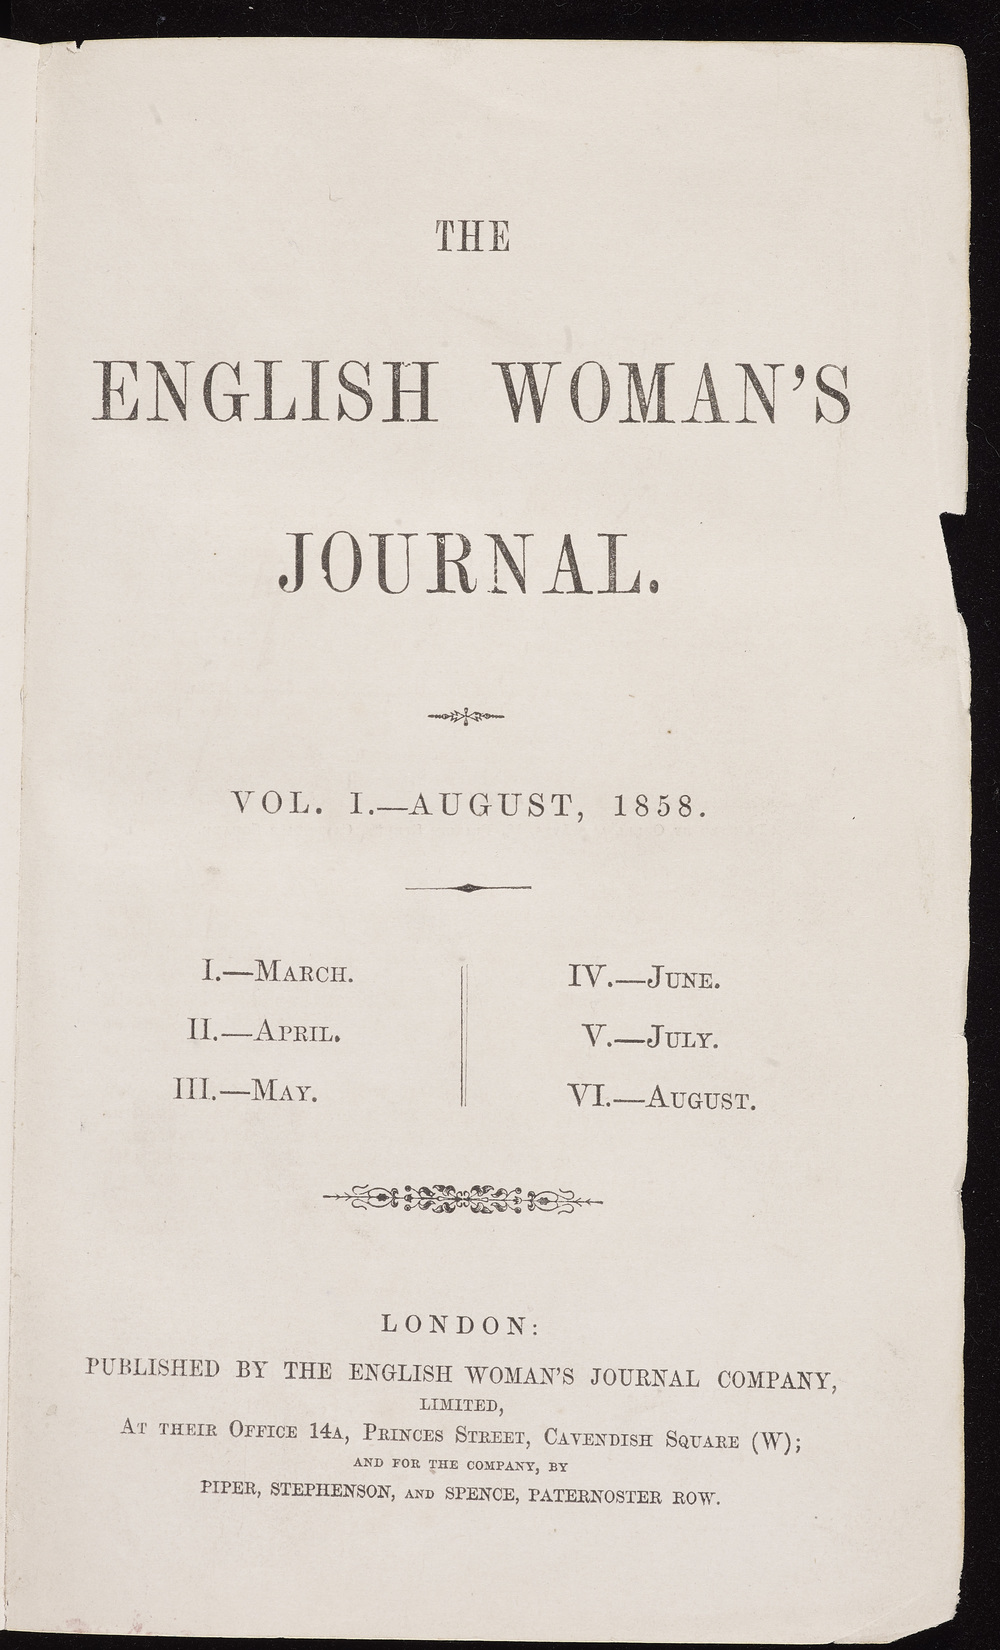 The English Woman's Journal, 1858